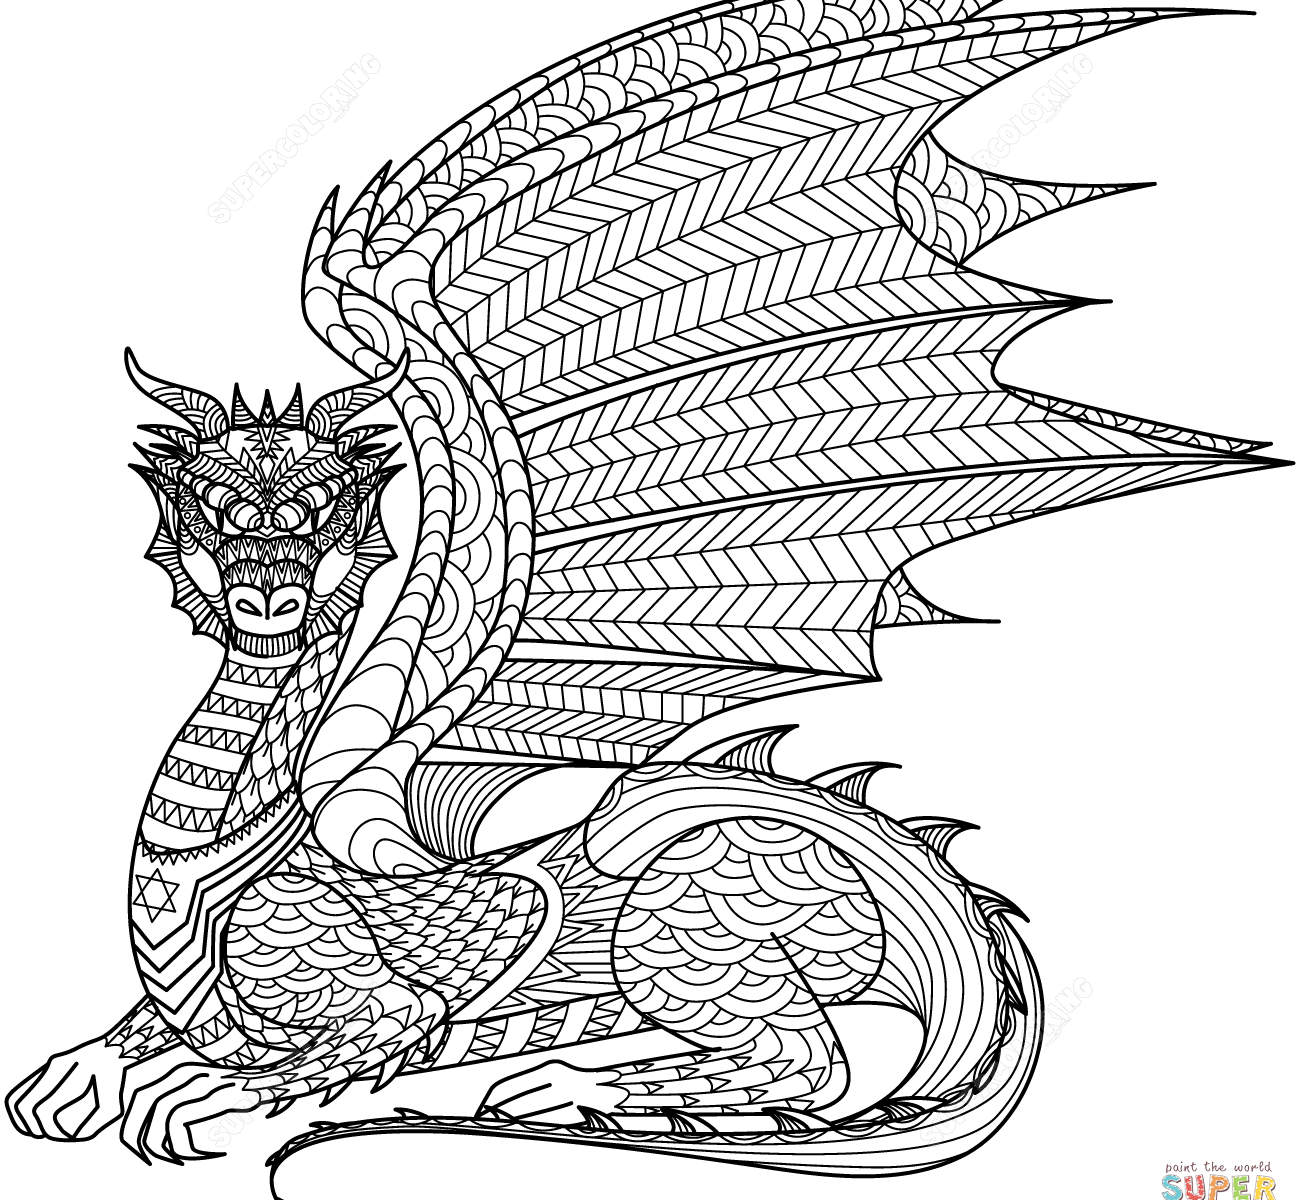 1300x1200 Wolf Zentangle Coloring Page Free Printable Extreme Pages